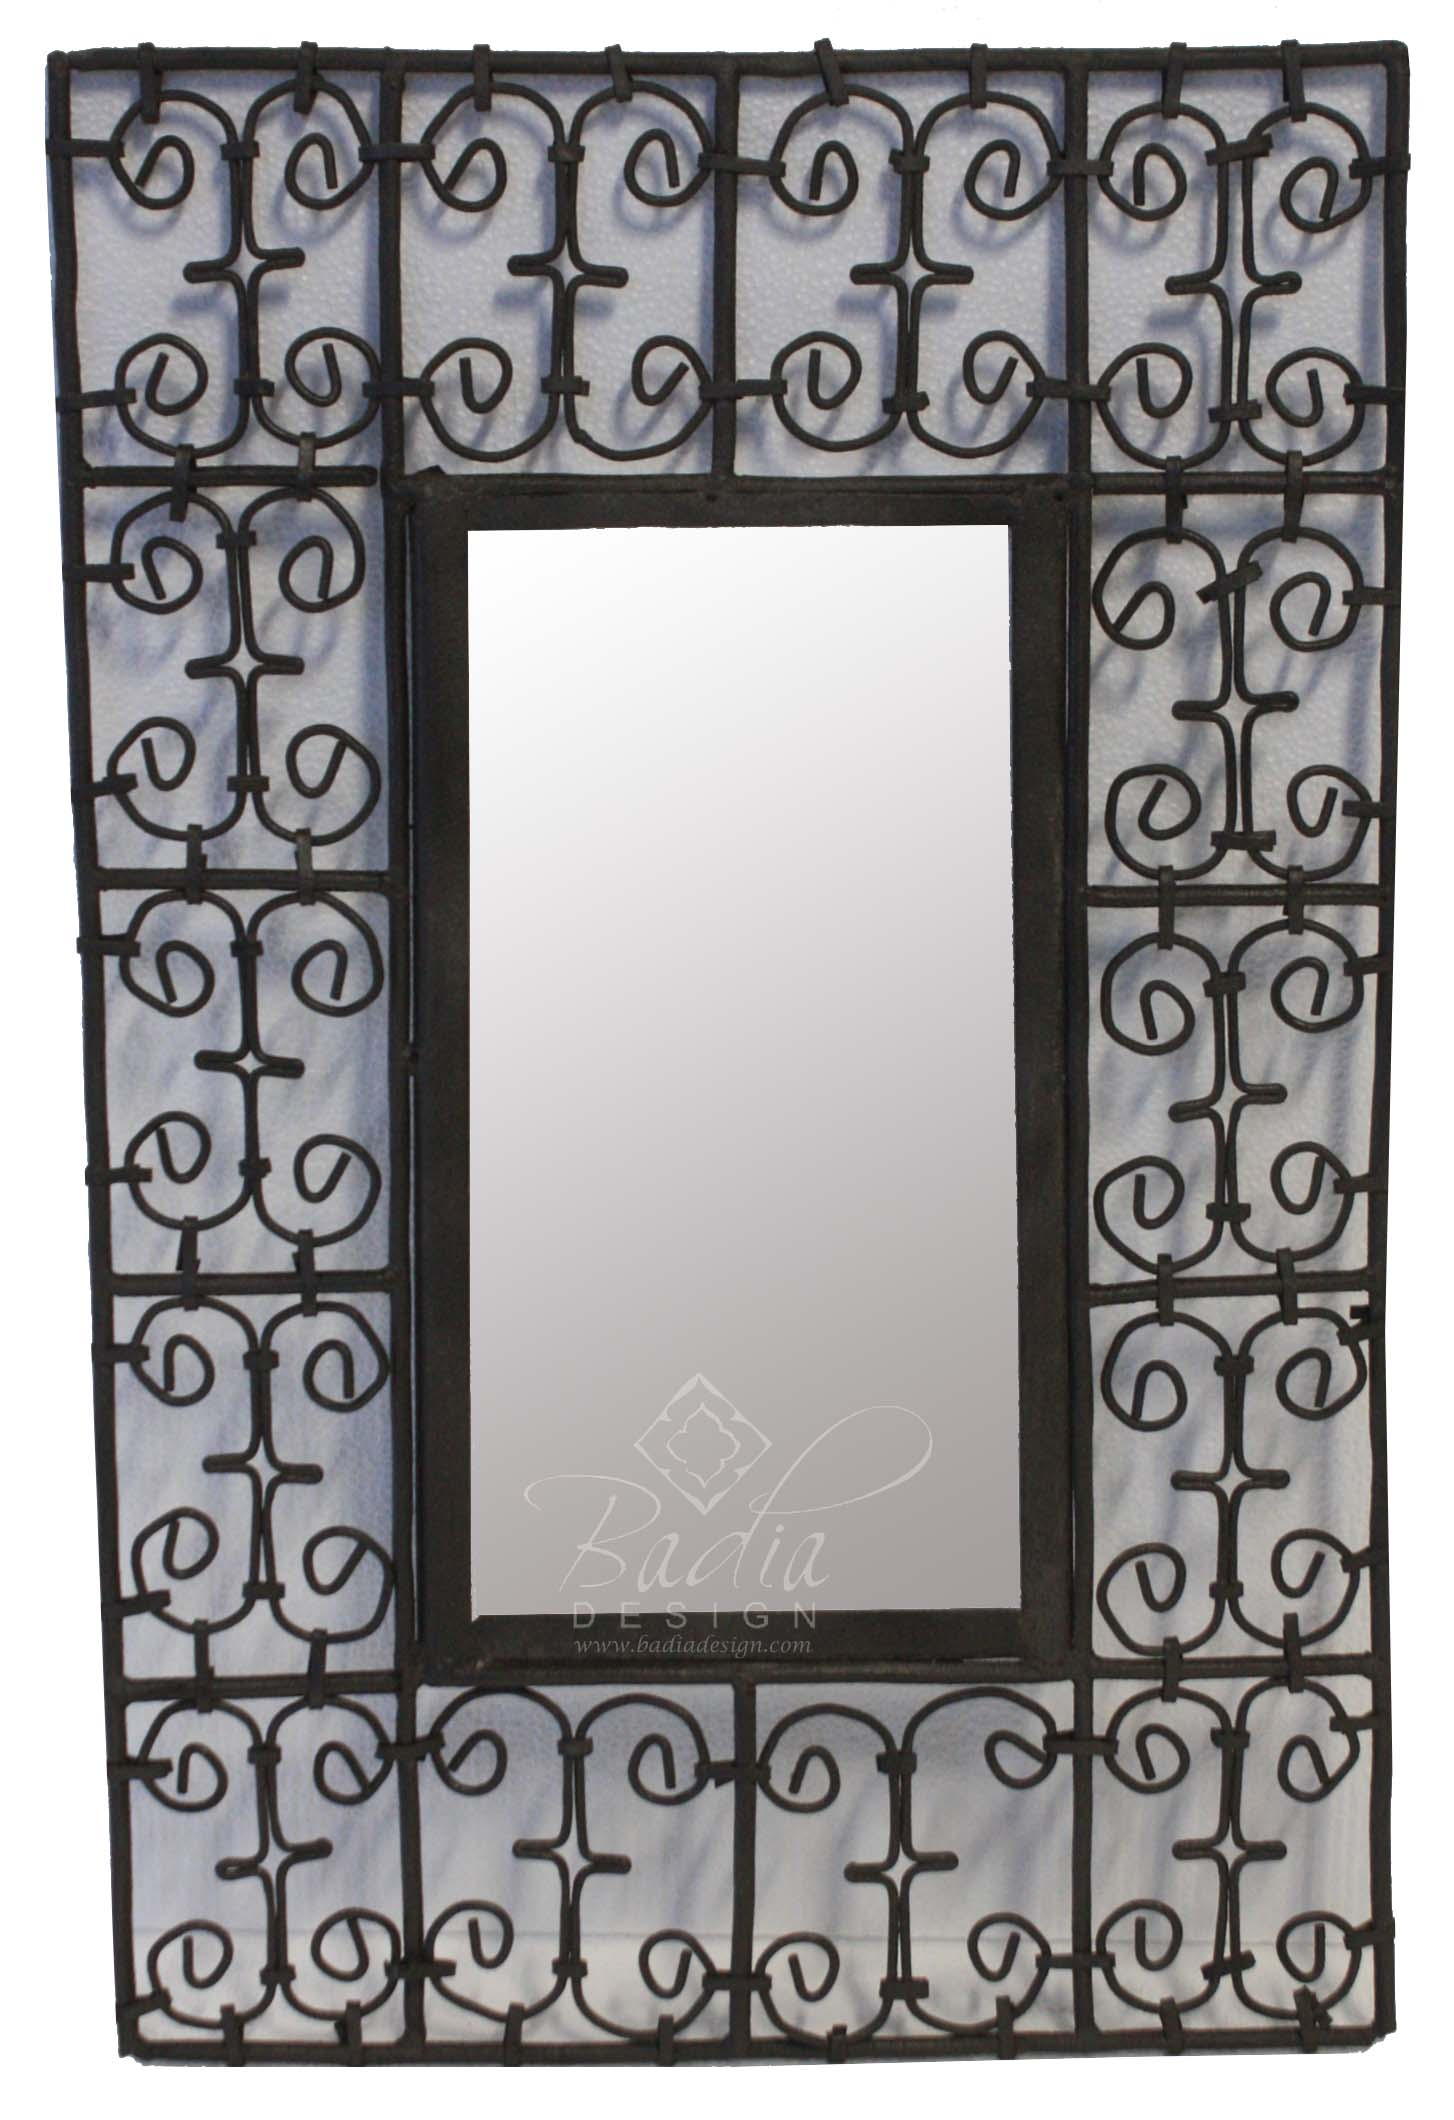 moroccan-wrought-iron-mirror-is8.jpg